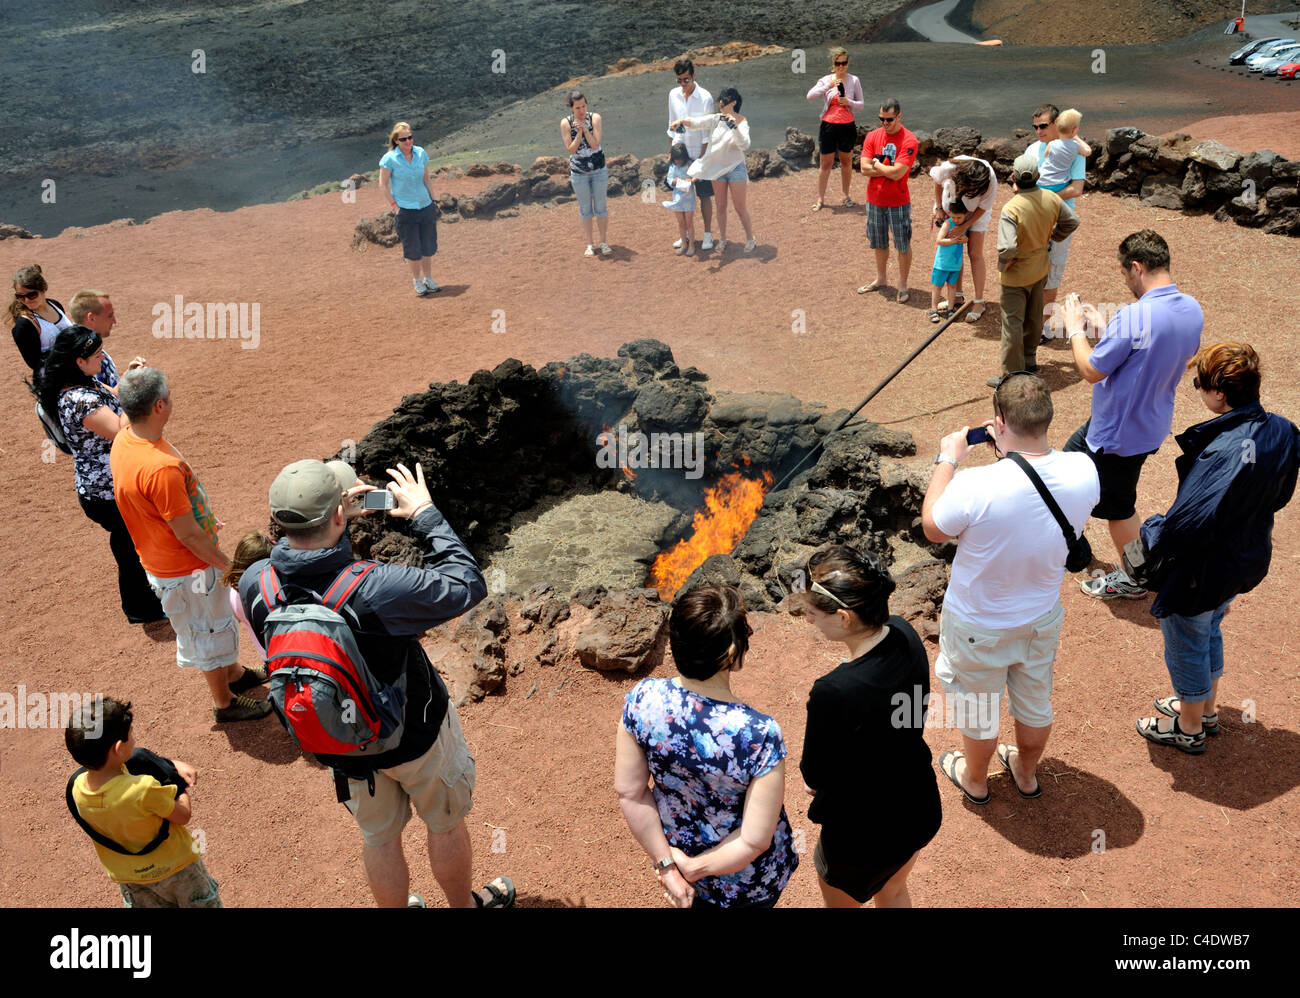 Tourists watching volcanic heat set fire to dry lichen Timanfaya park, Lanzarote, 'Canary Islands' - Stock Image